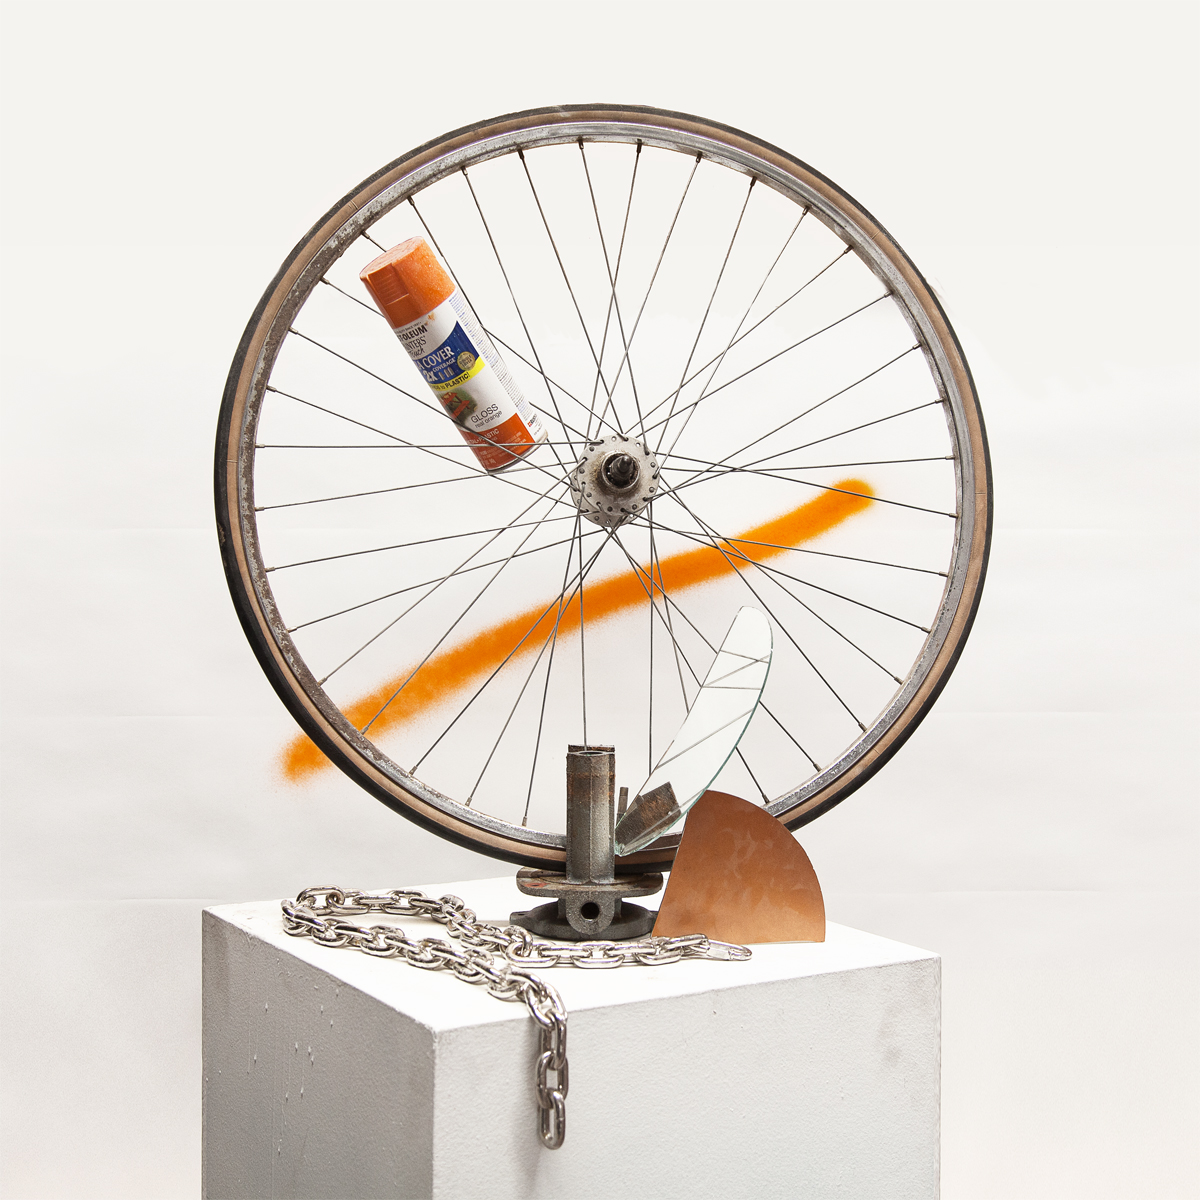 thejogging: Miscellaneous Studio Junk that Looks Like a Plausible Sculpture, 2013 (Photographed in a Way that Demands to be Taken Seriously) Bushwick Version: Wheel, chain, scrap metal, mirror, racial tension, spray paint. Dimensions variable